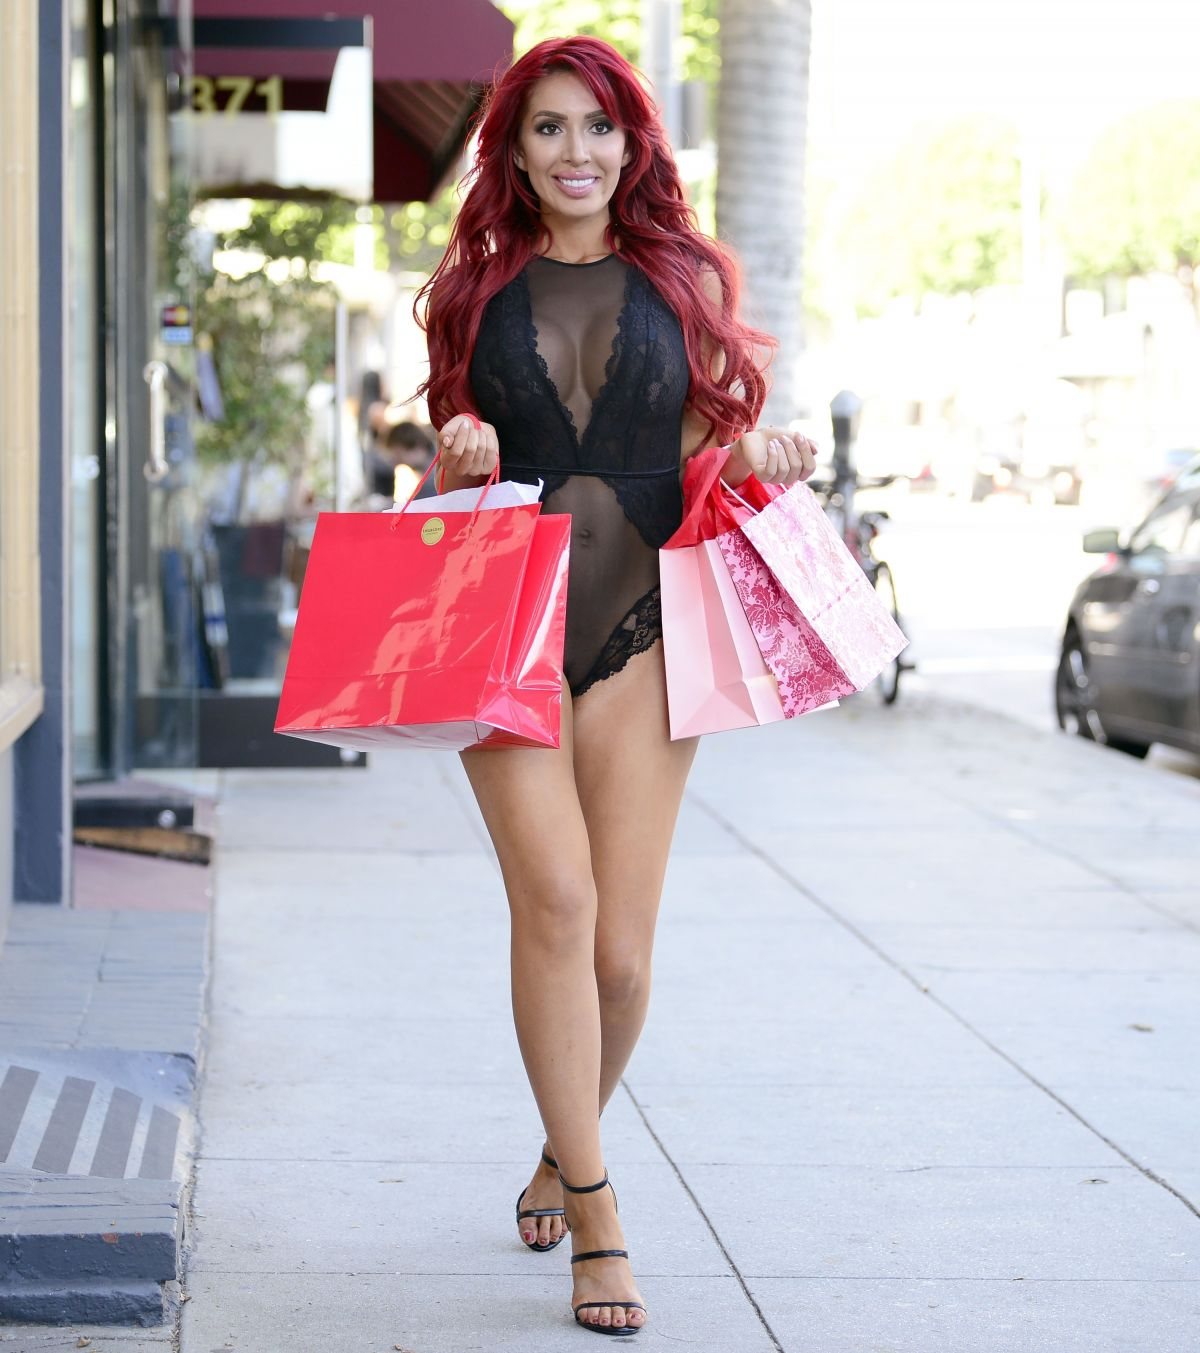 farrah-abraham-reveals-all-during-a-new-photoshoot-in-los-angeles-7